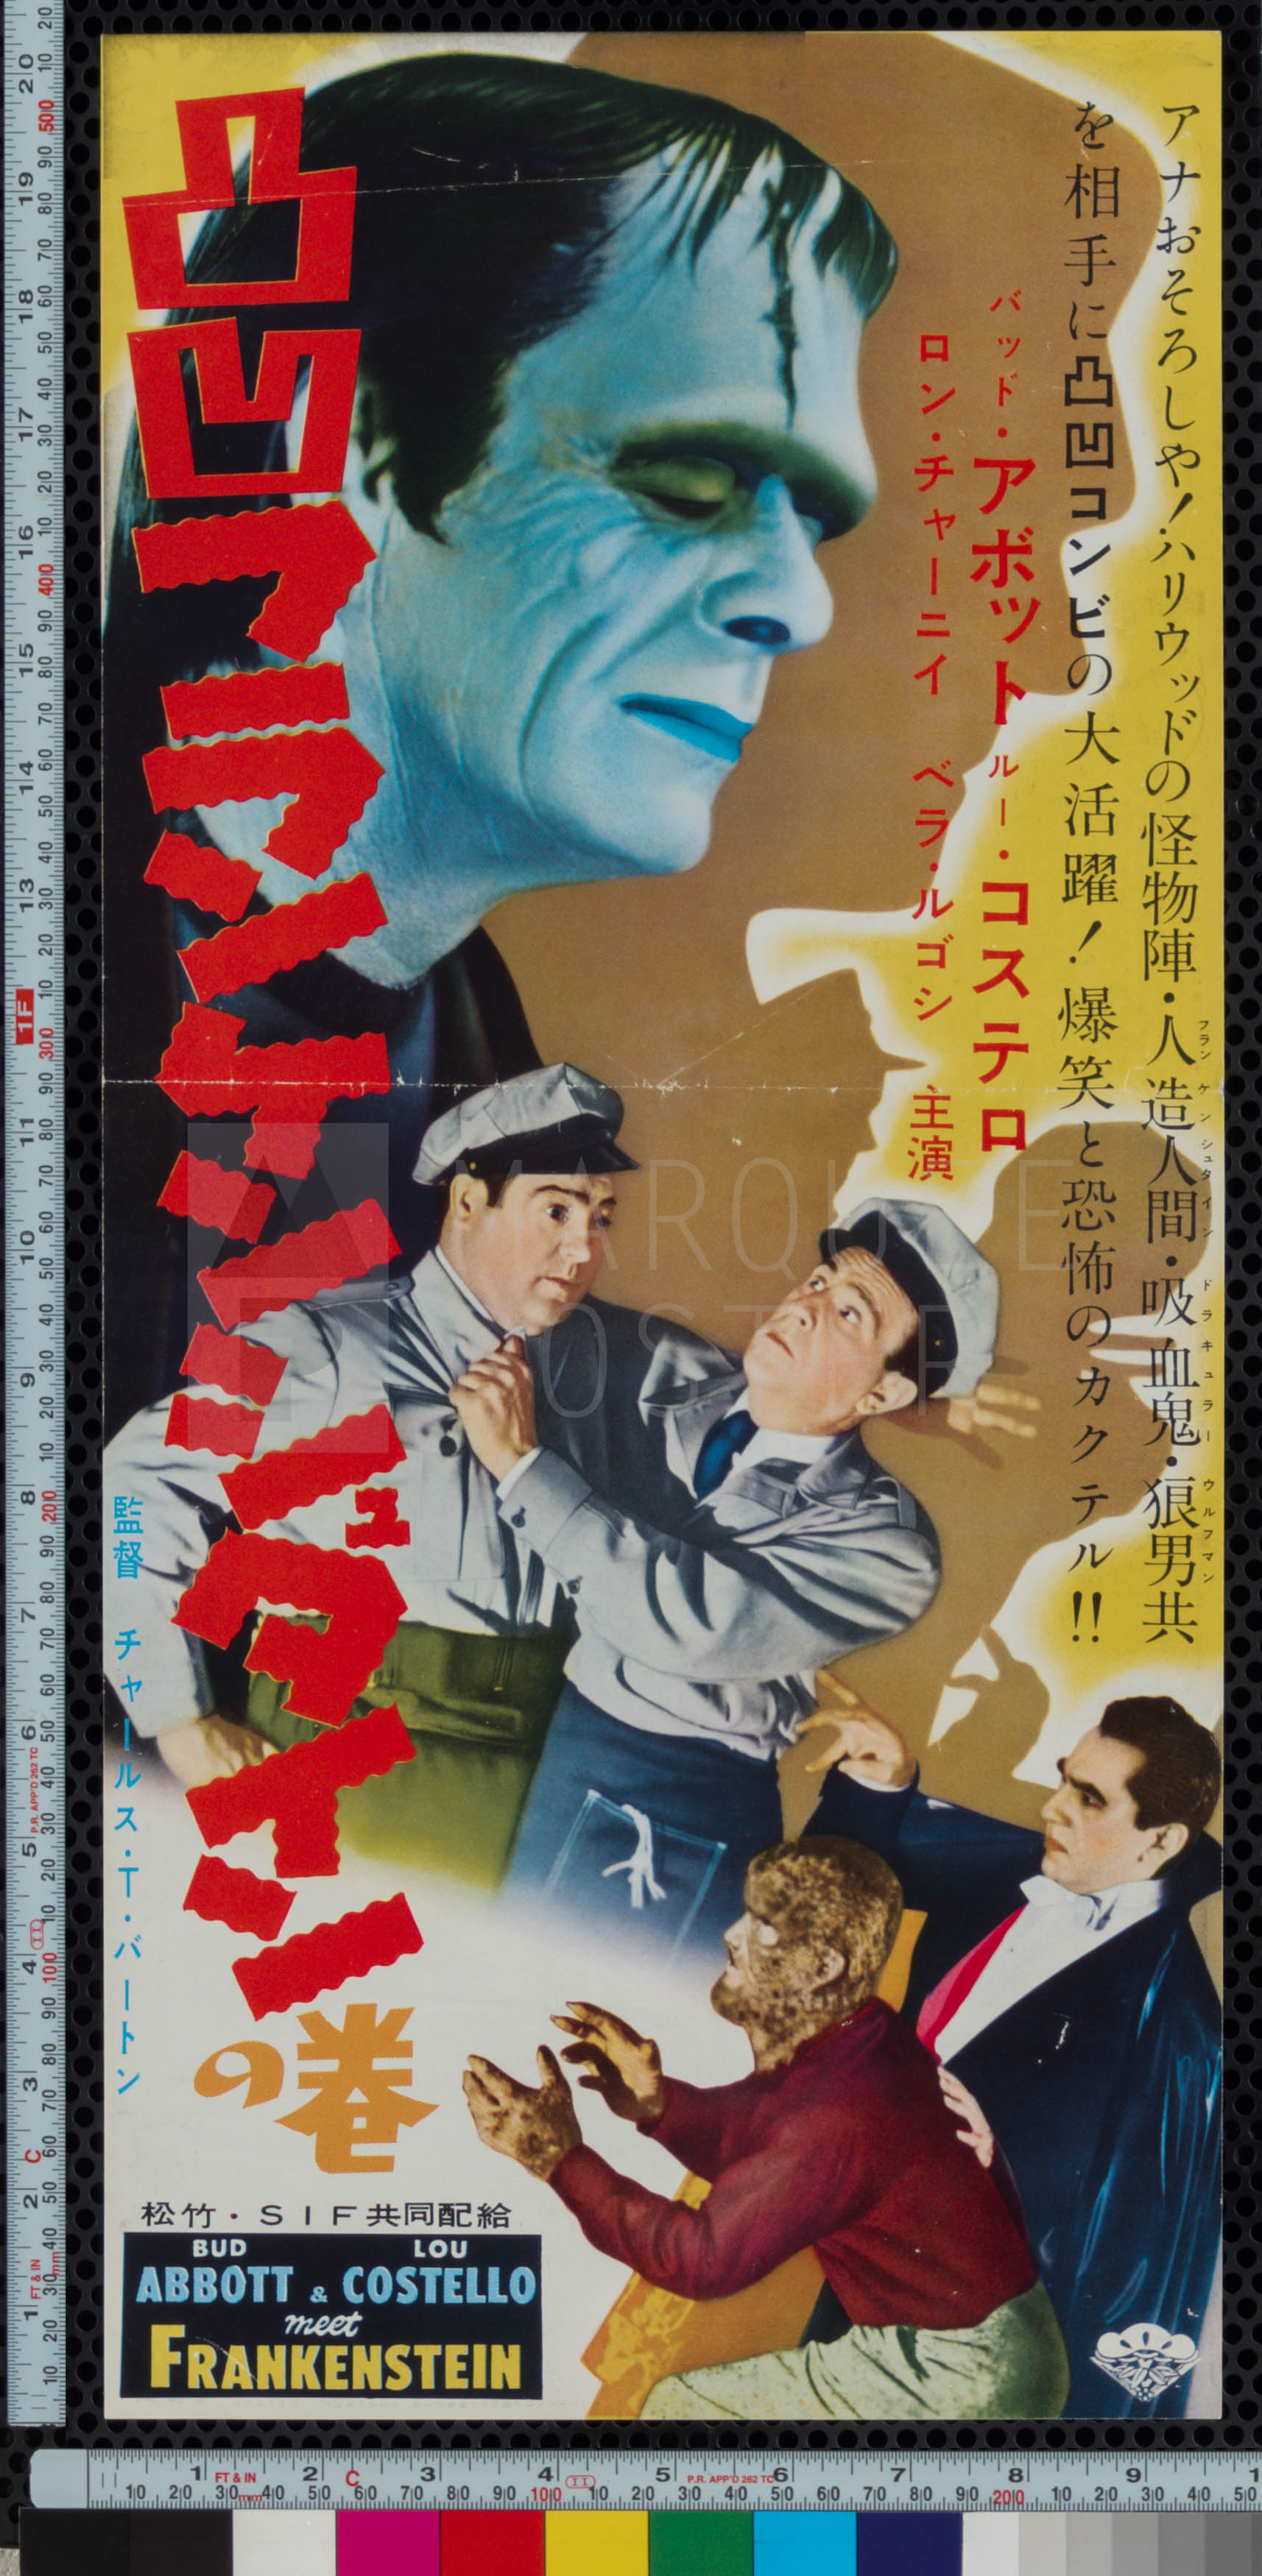 67-abbott-and-costello-meet-frankenstein-press-japanese-b4-1954-02